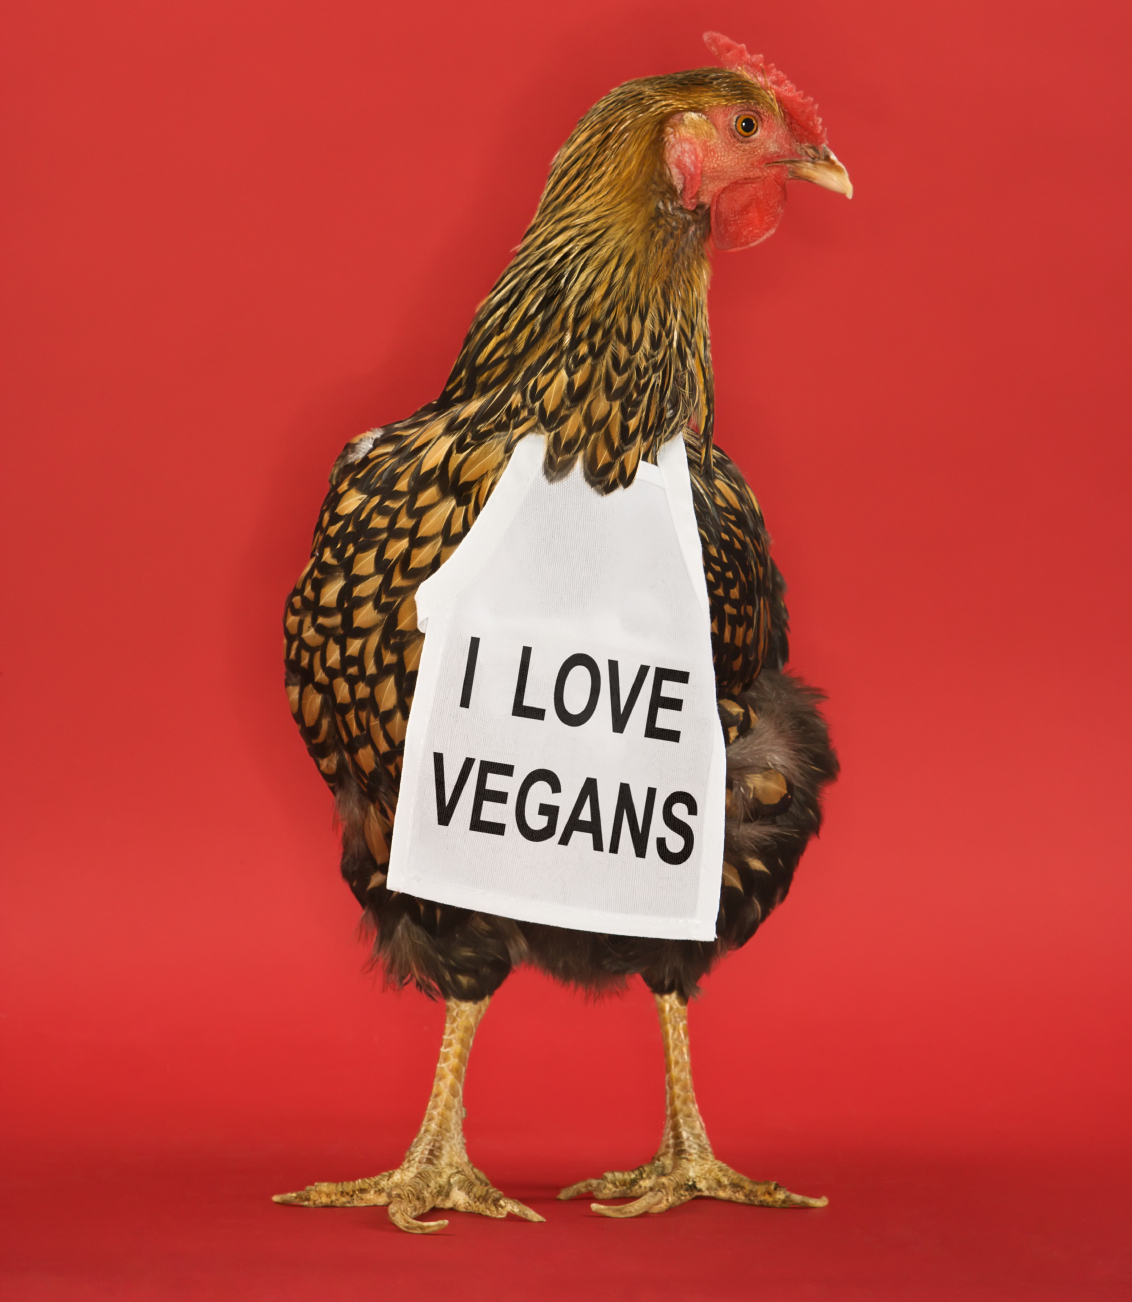 Want To Help Animals? No Vegan Extremism Required